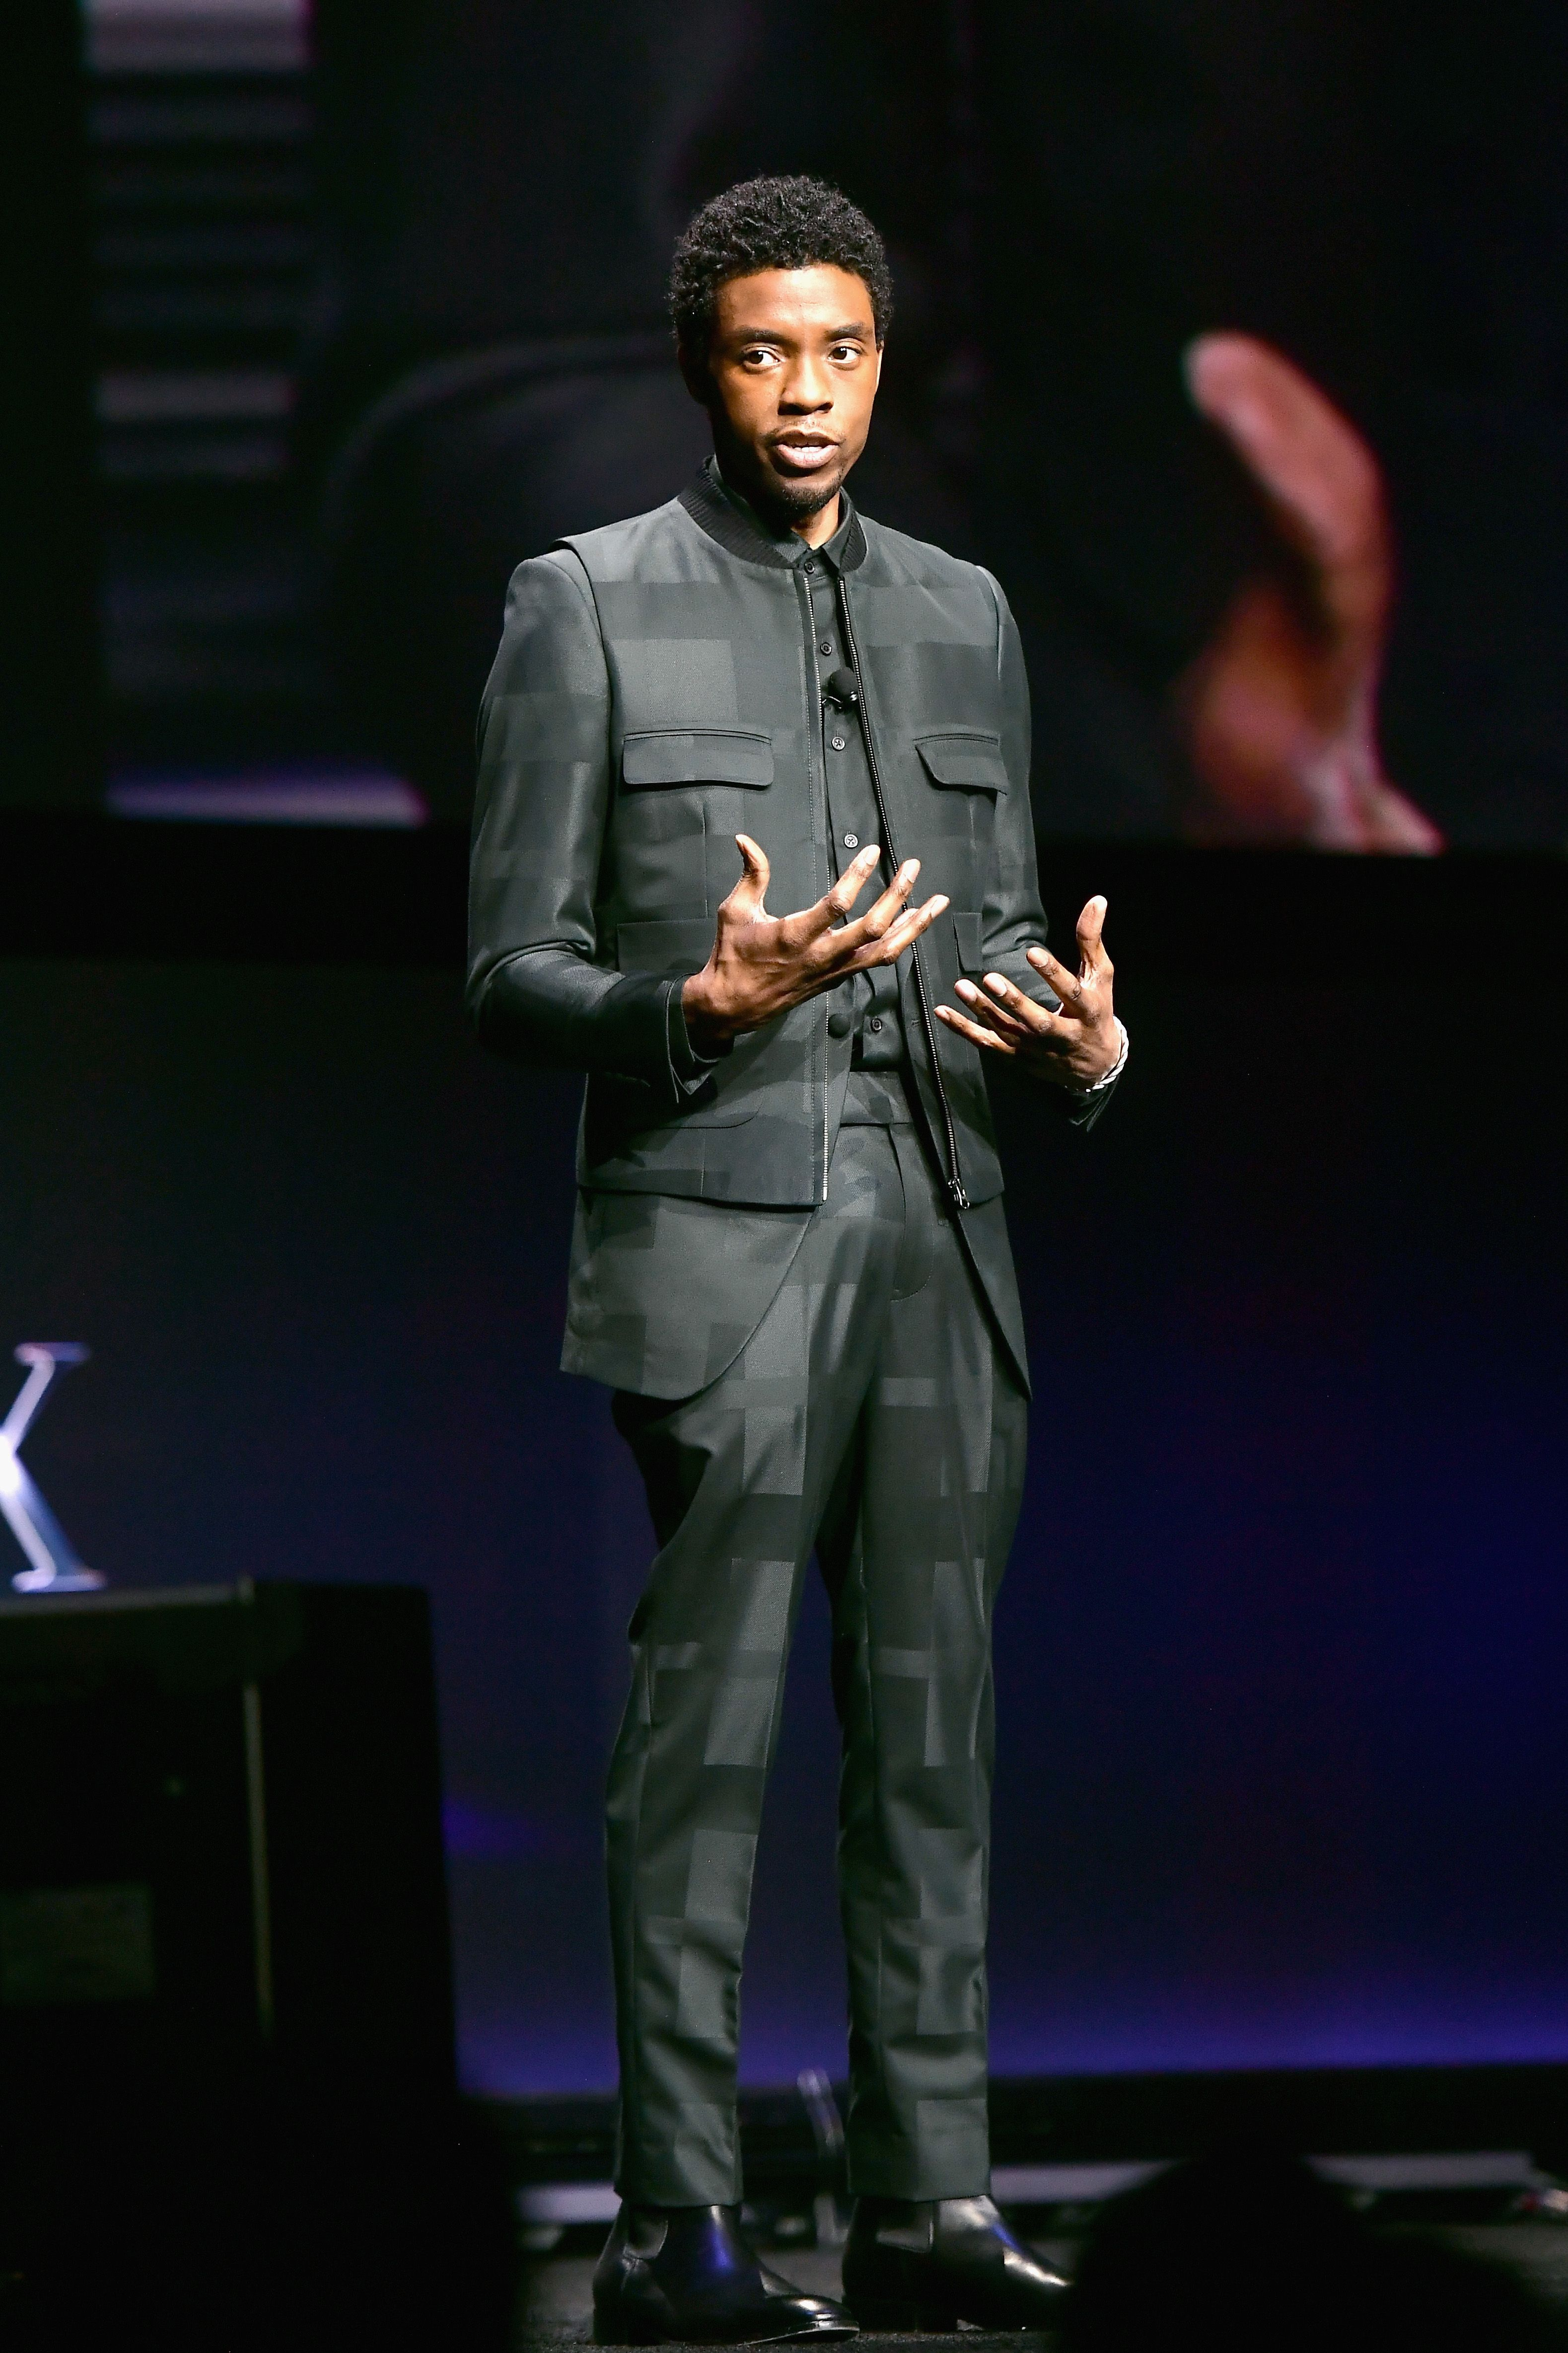 Chadwick Boseman Just Out-Dressed Every TED Talk Host Ever